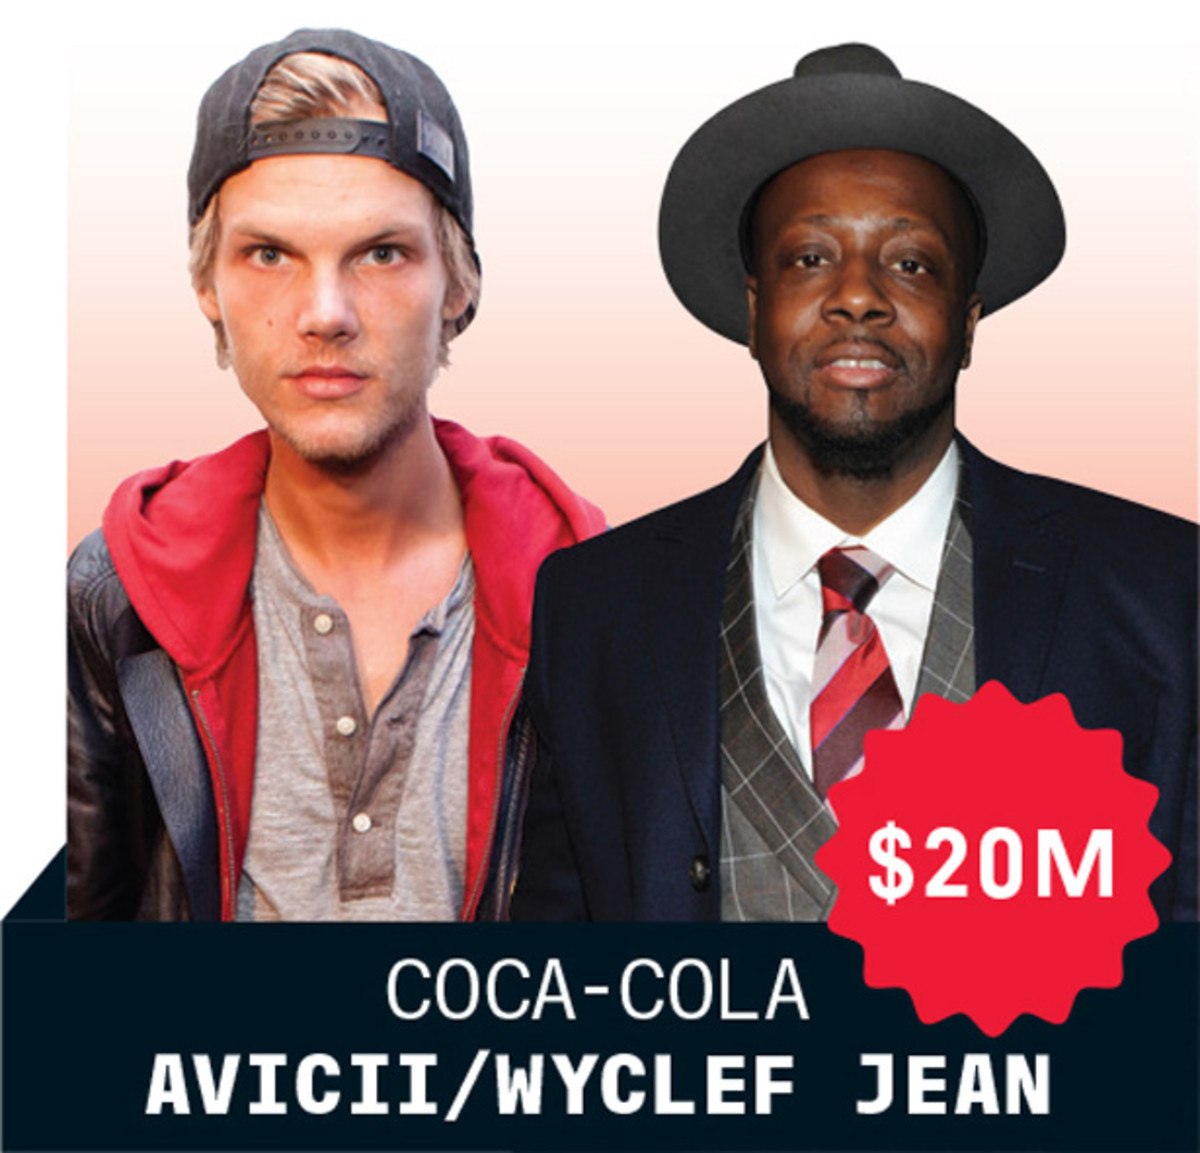 Together Tiesto & Avicii Rake In $50 Million In Soda Deals